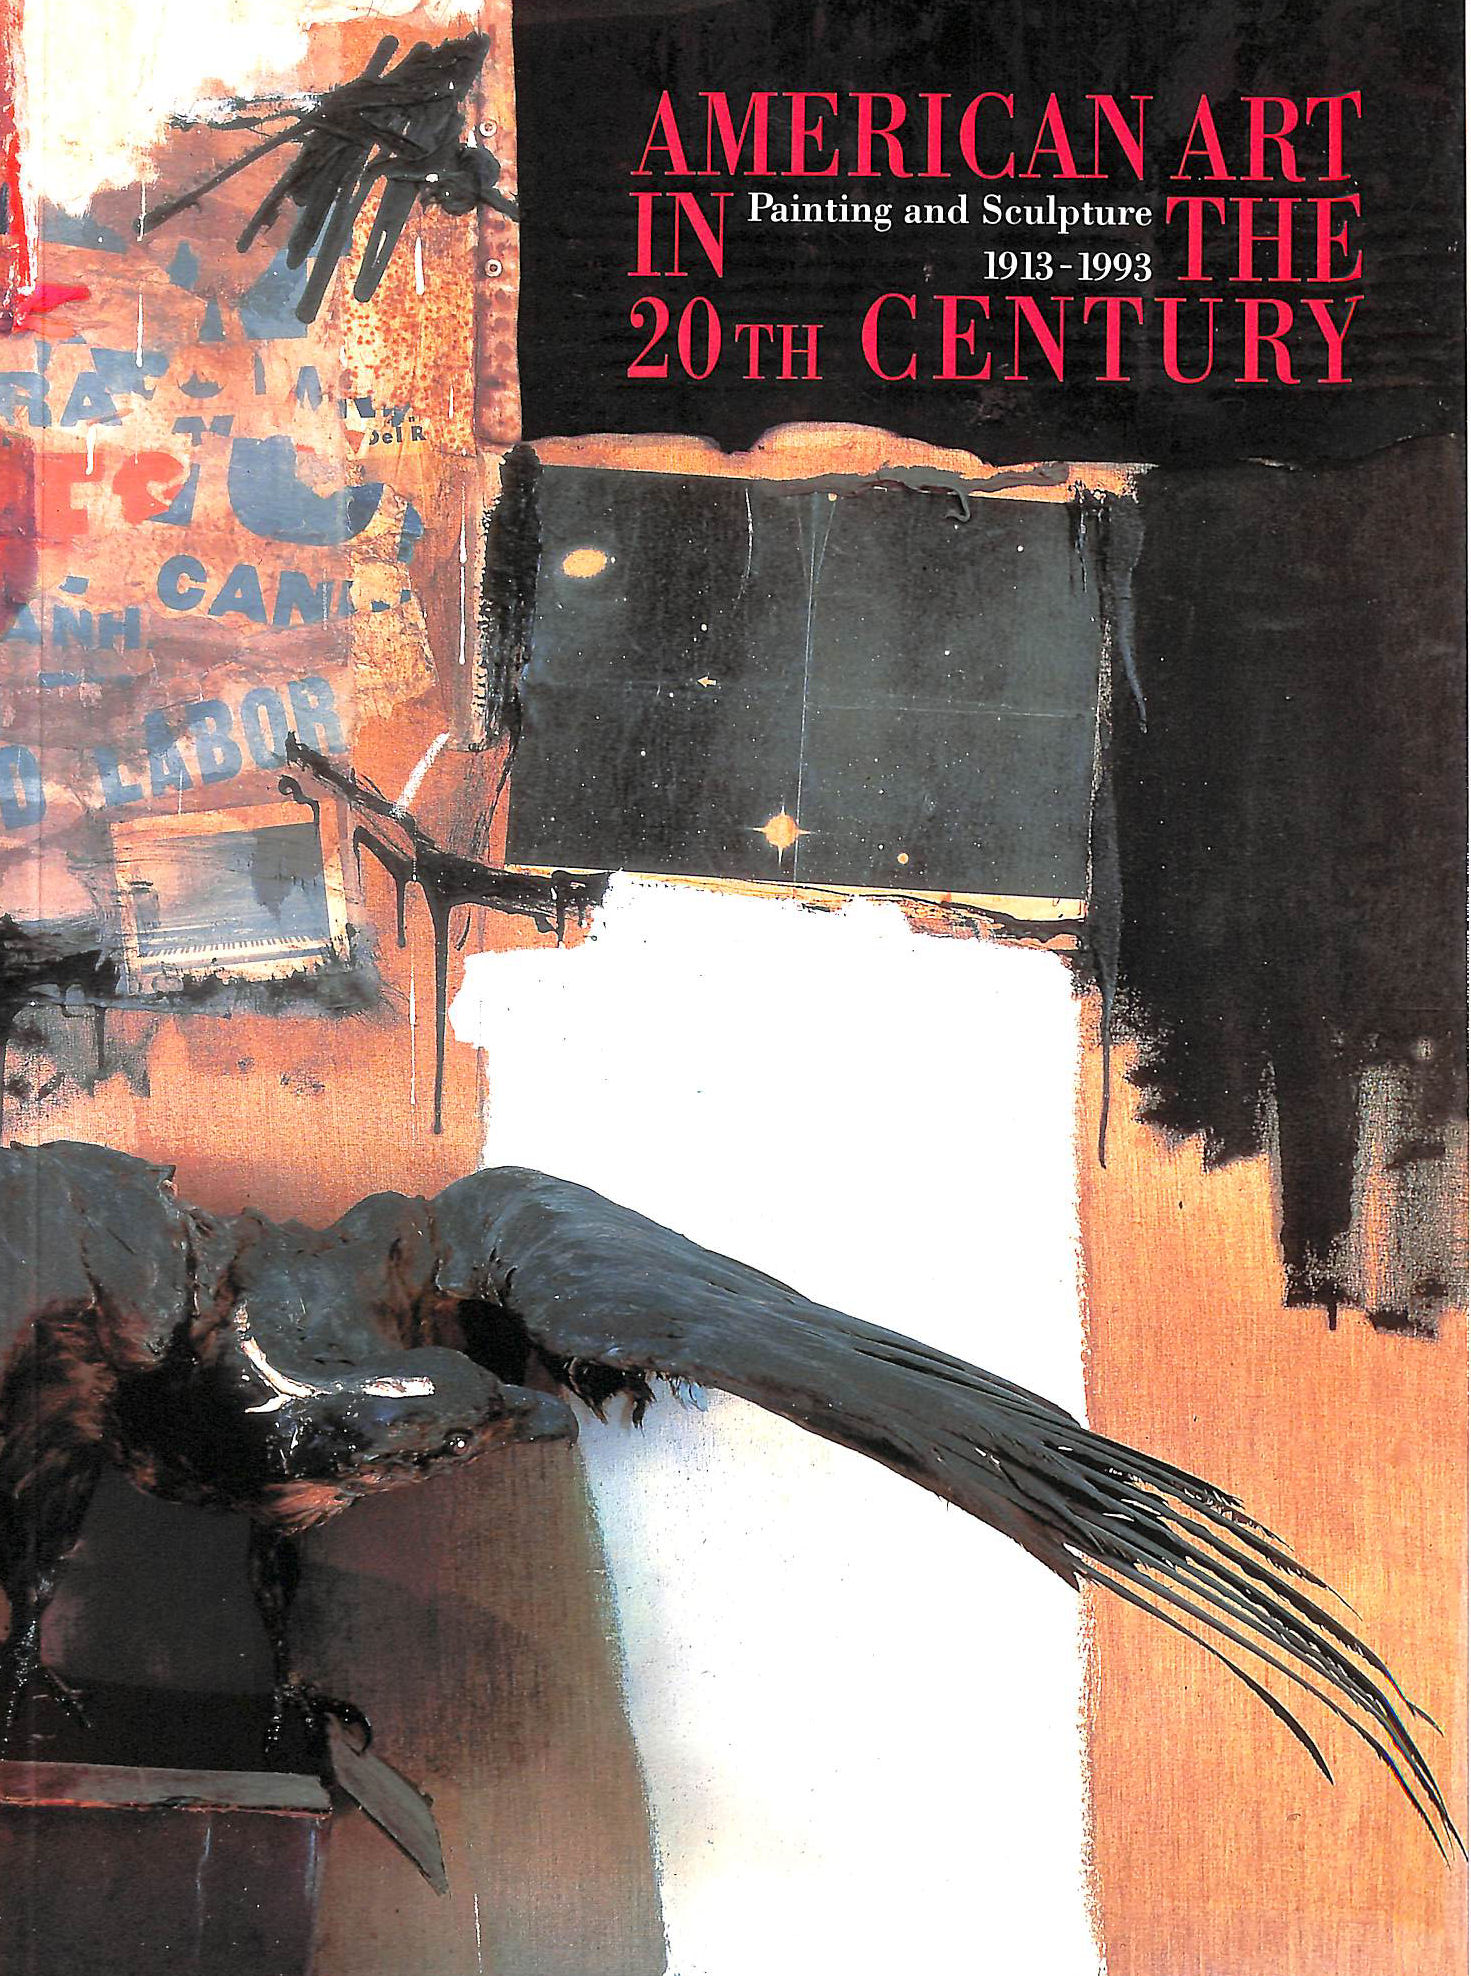 Image for American Art in the 20th Century: Painting and Sculpture, 1913-93